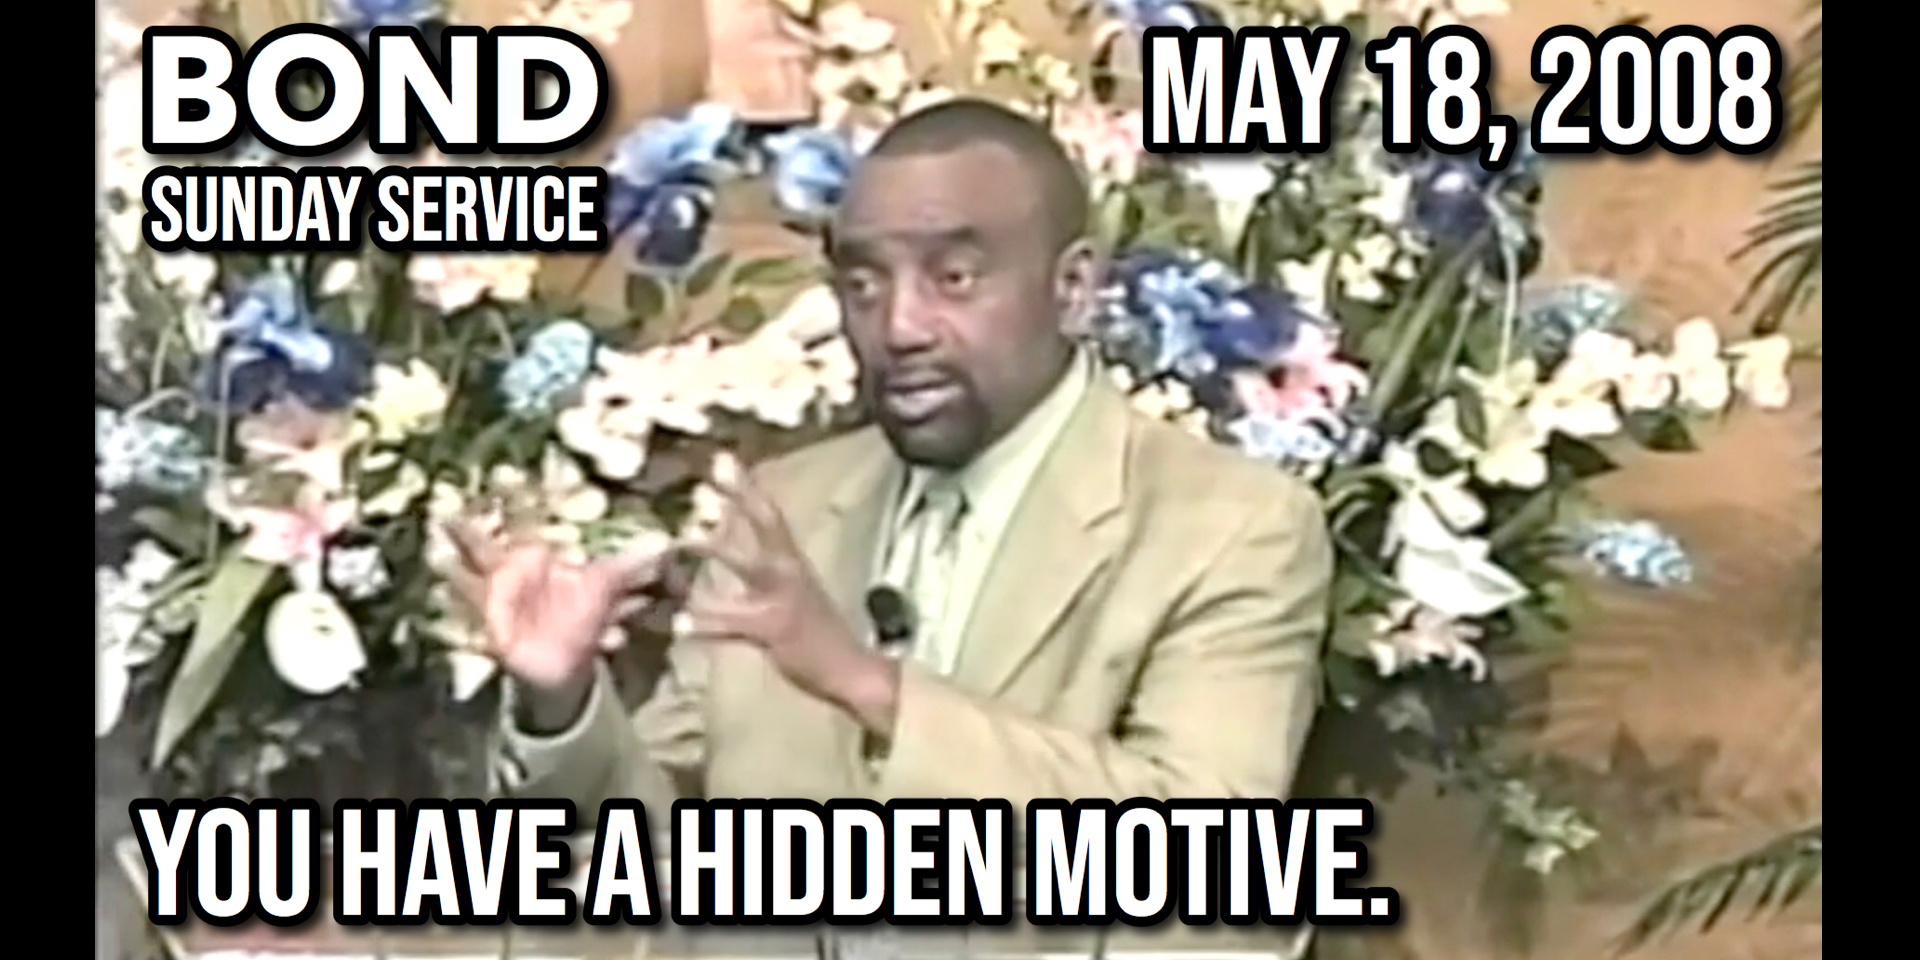 You Have a Hidden Motive (Sunday Service, May 18, 2008)